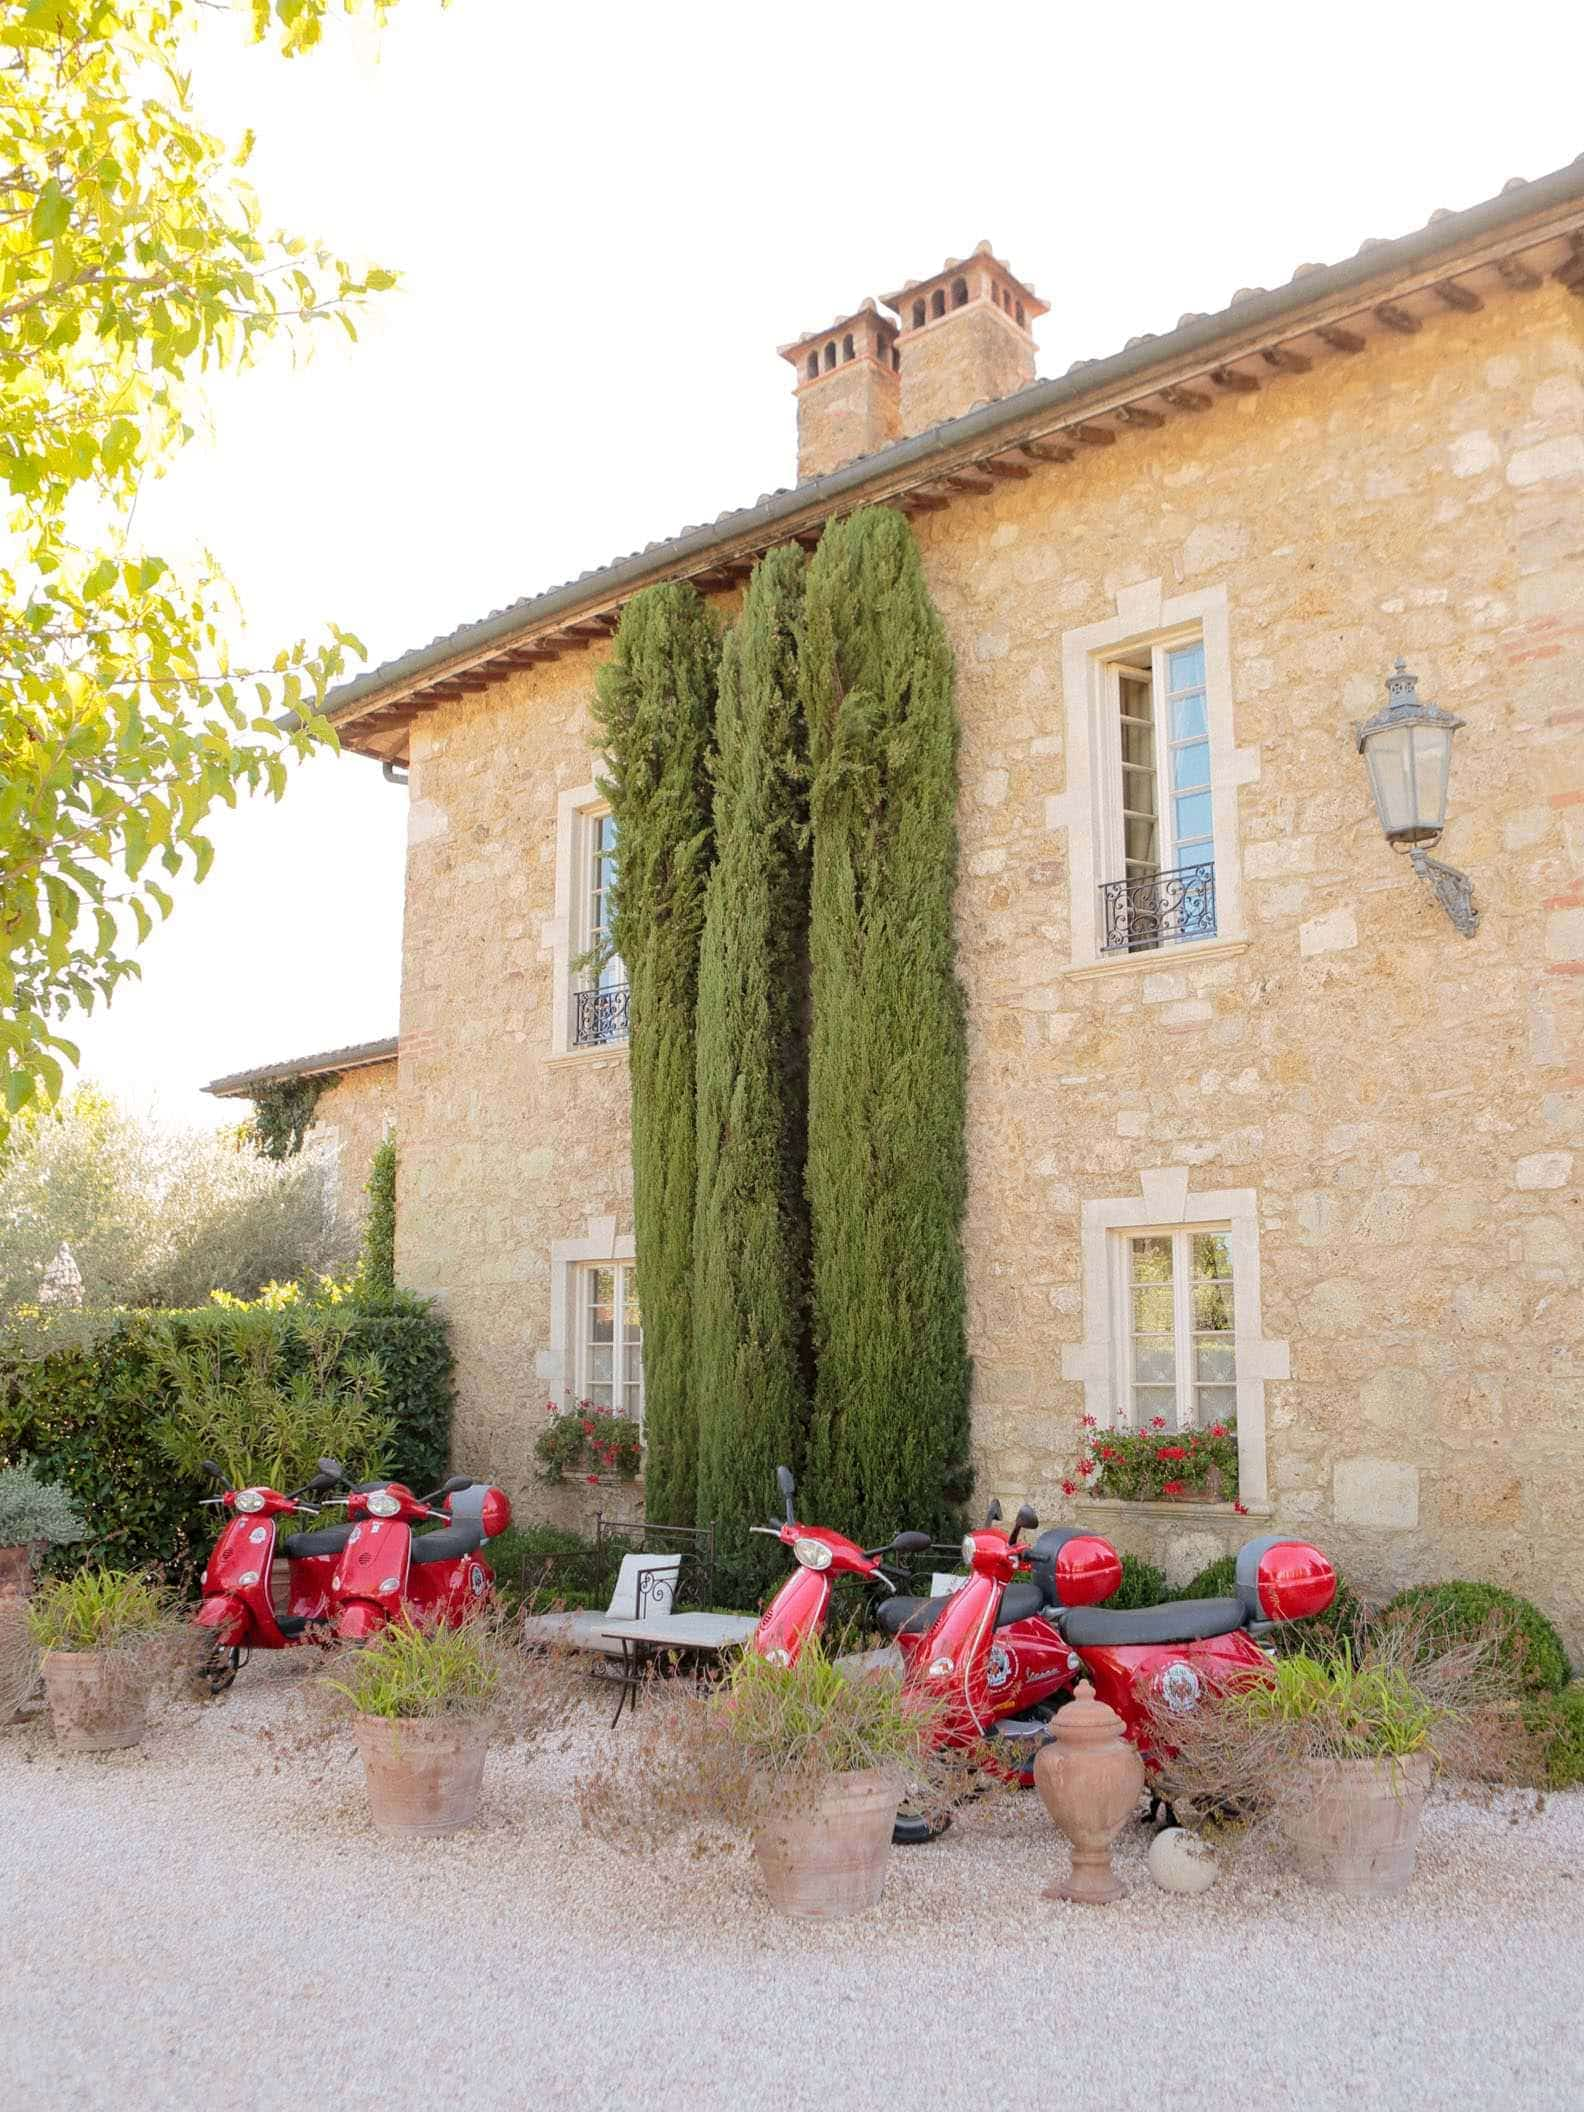 the wall if the main villa of borgo santo pietro, with cypress tress and red motorcycles